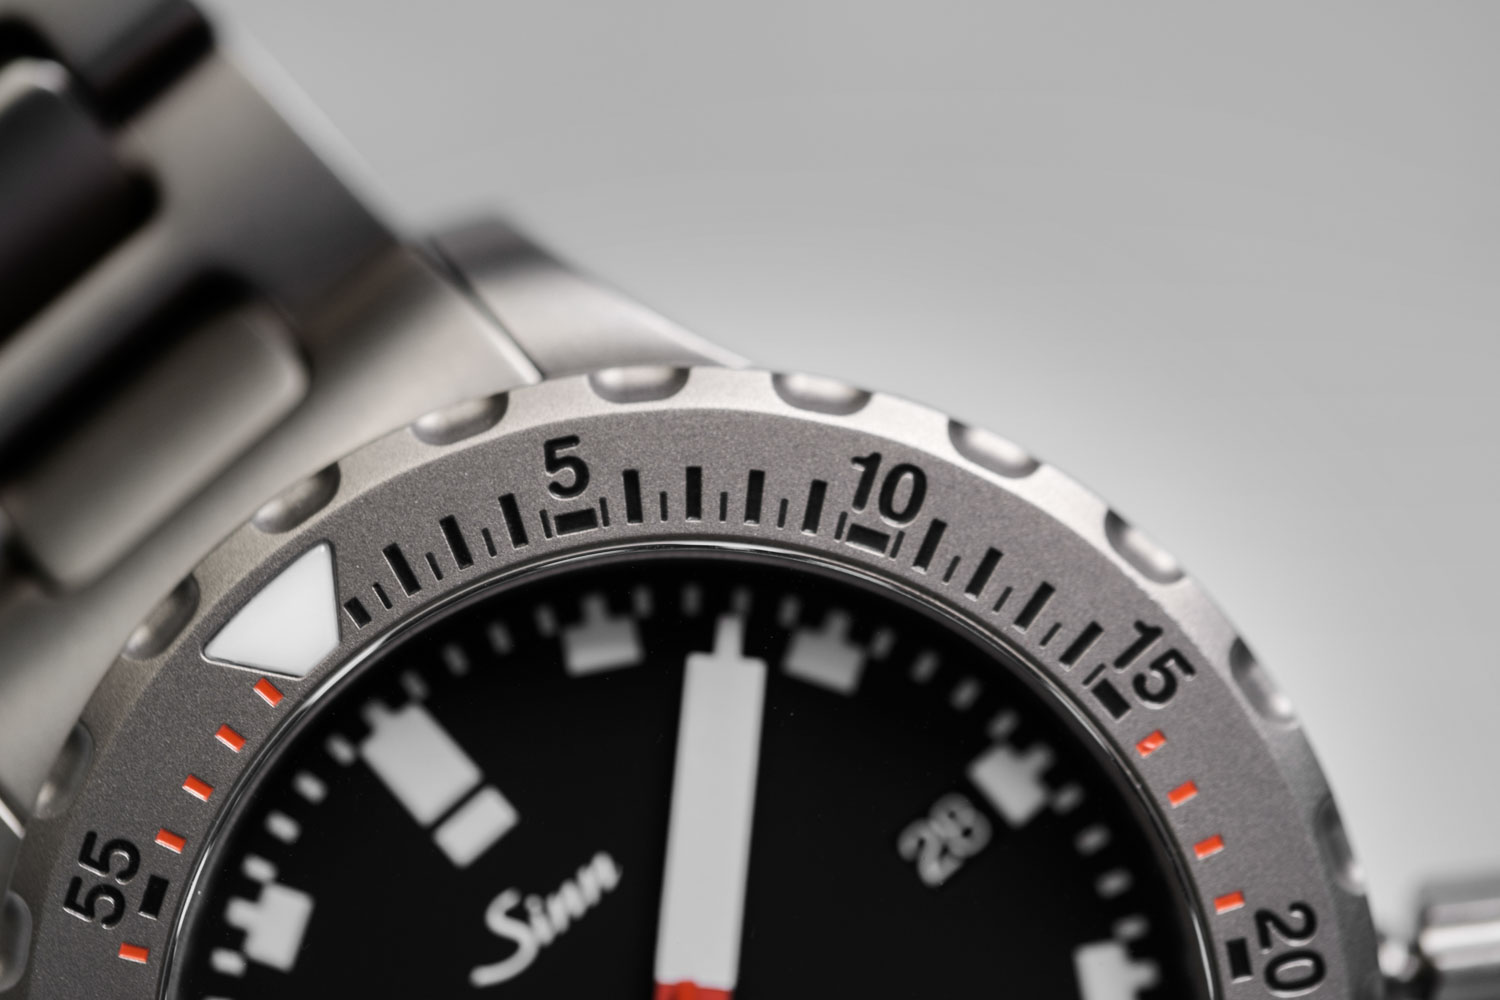 The TEGIMENT treated bezel of the SINN U50 features deep engravings for large legible markings on the dive scale of the watch (©Revolution)